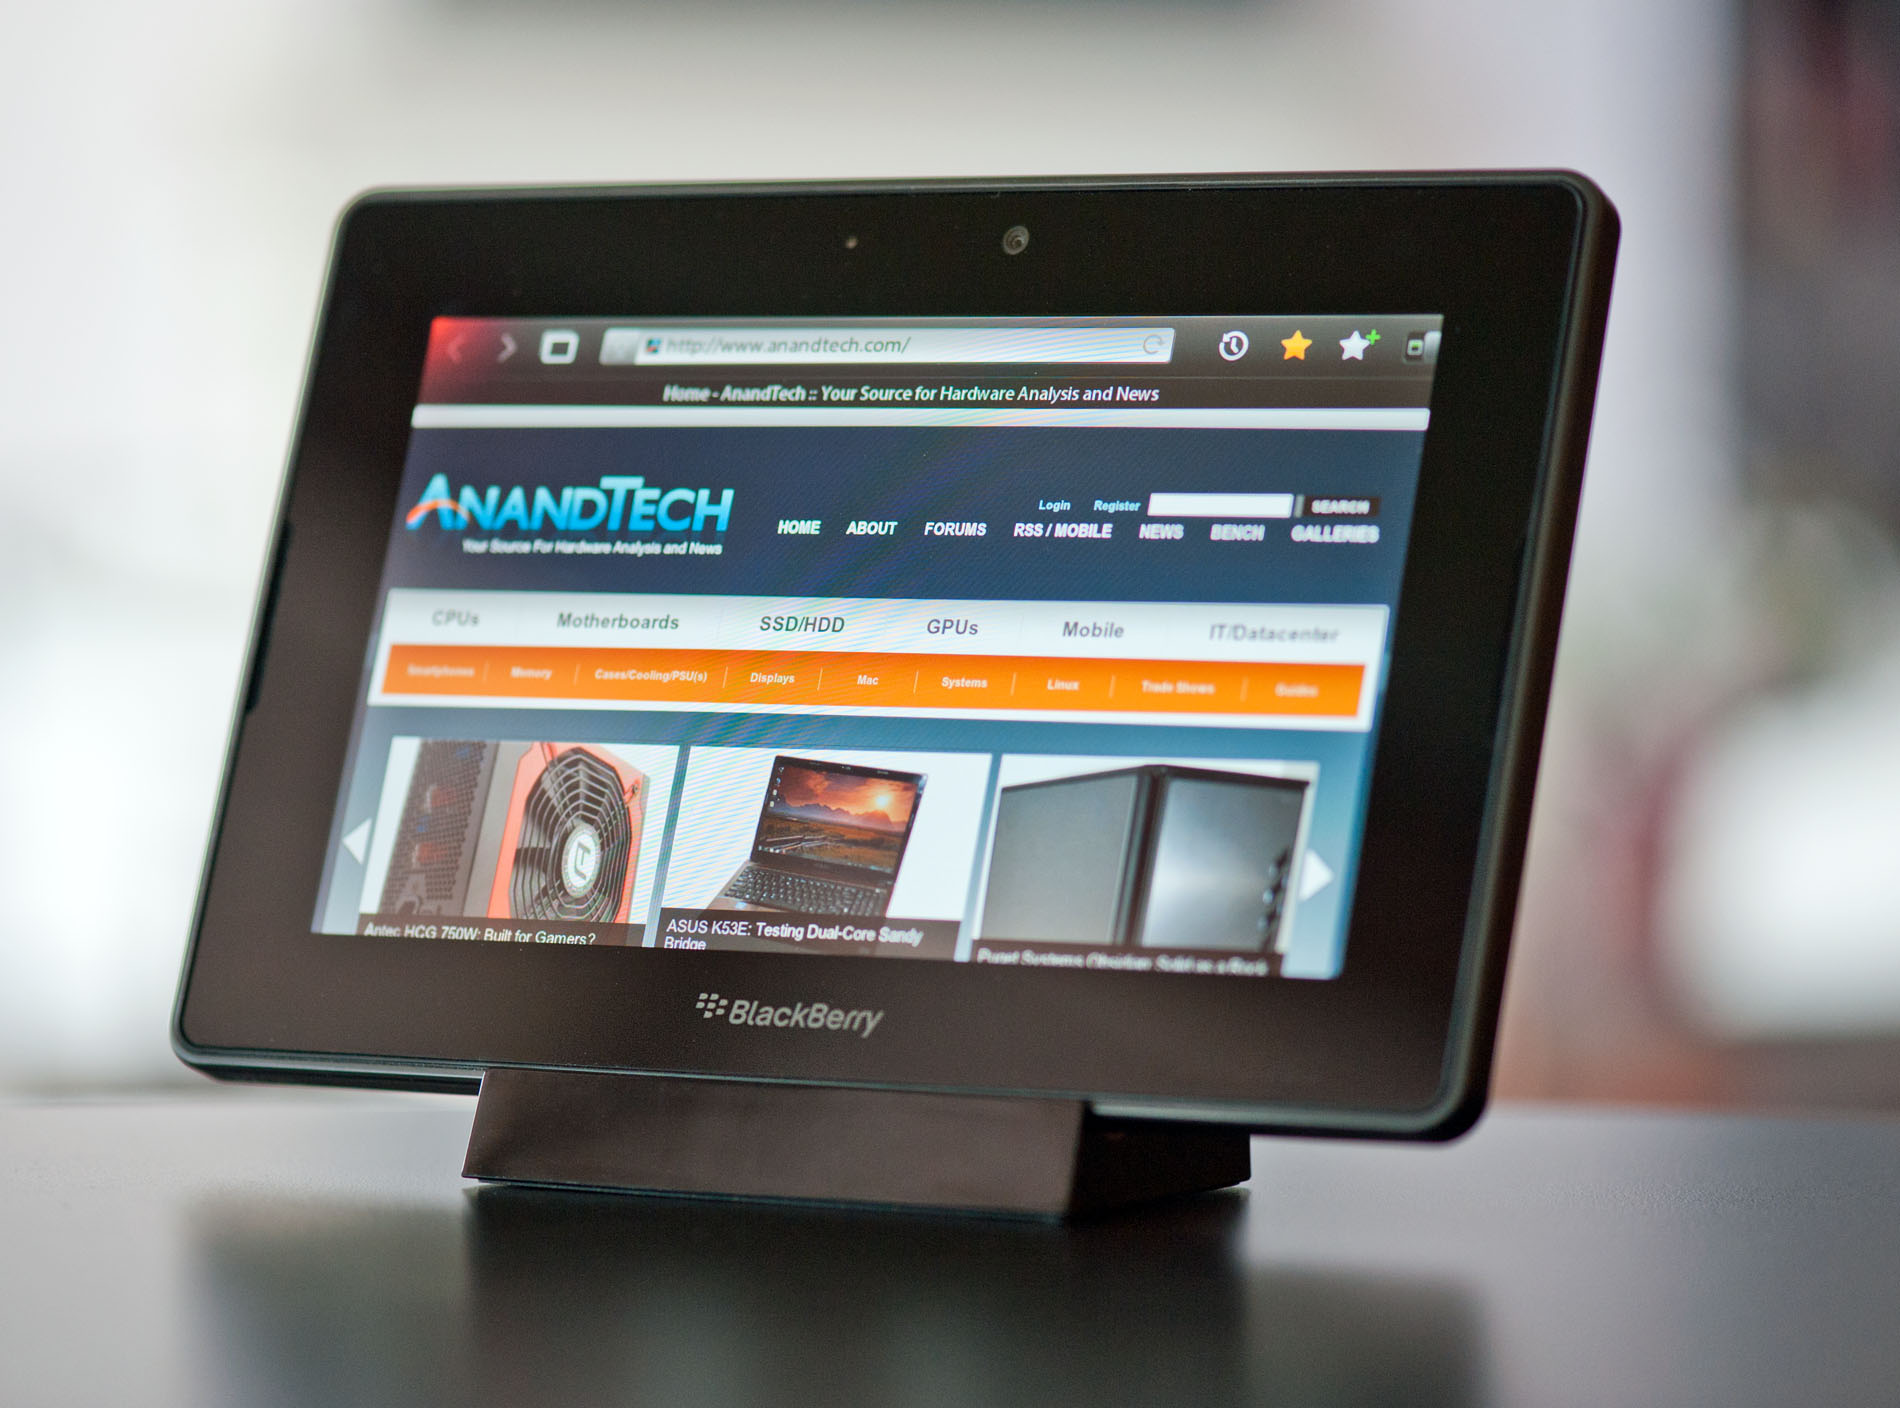 Blackberry playbook 7 tablet 64gb review uk dating 1